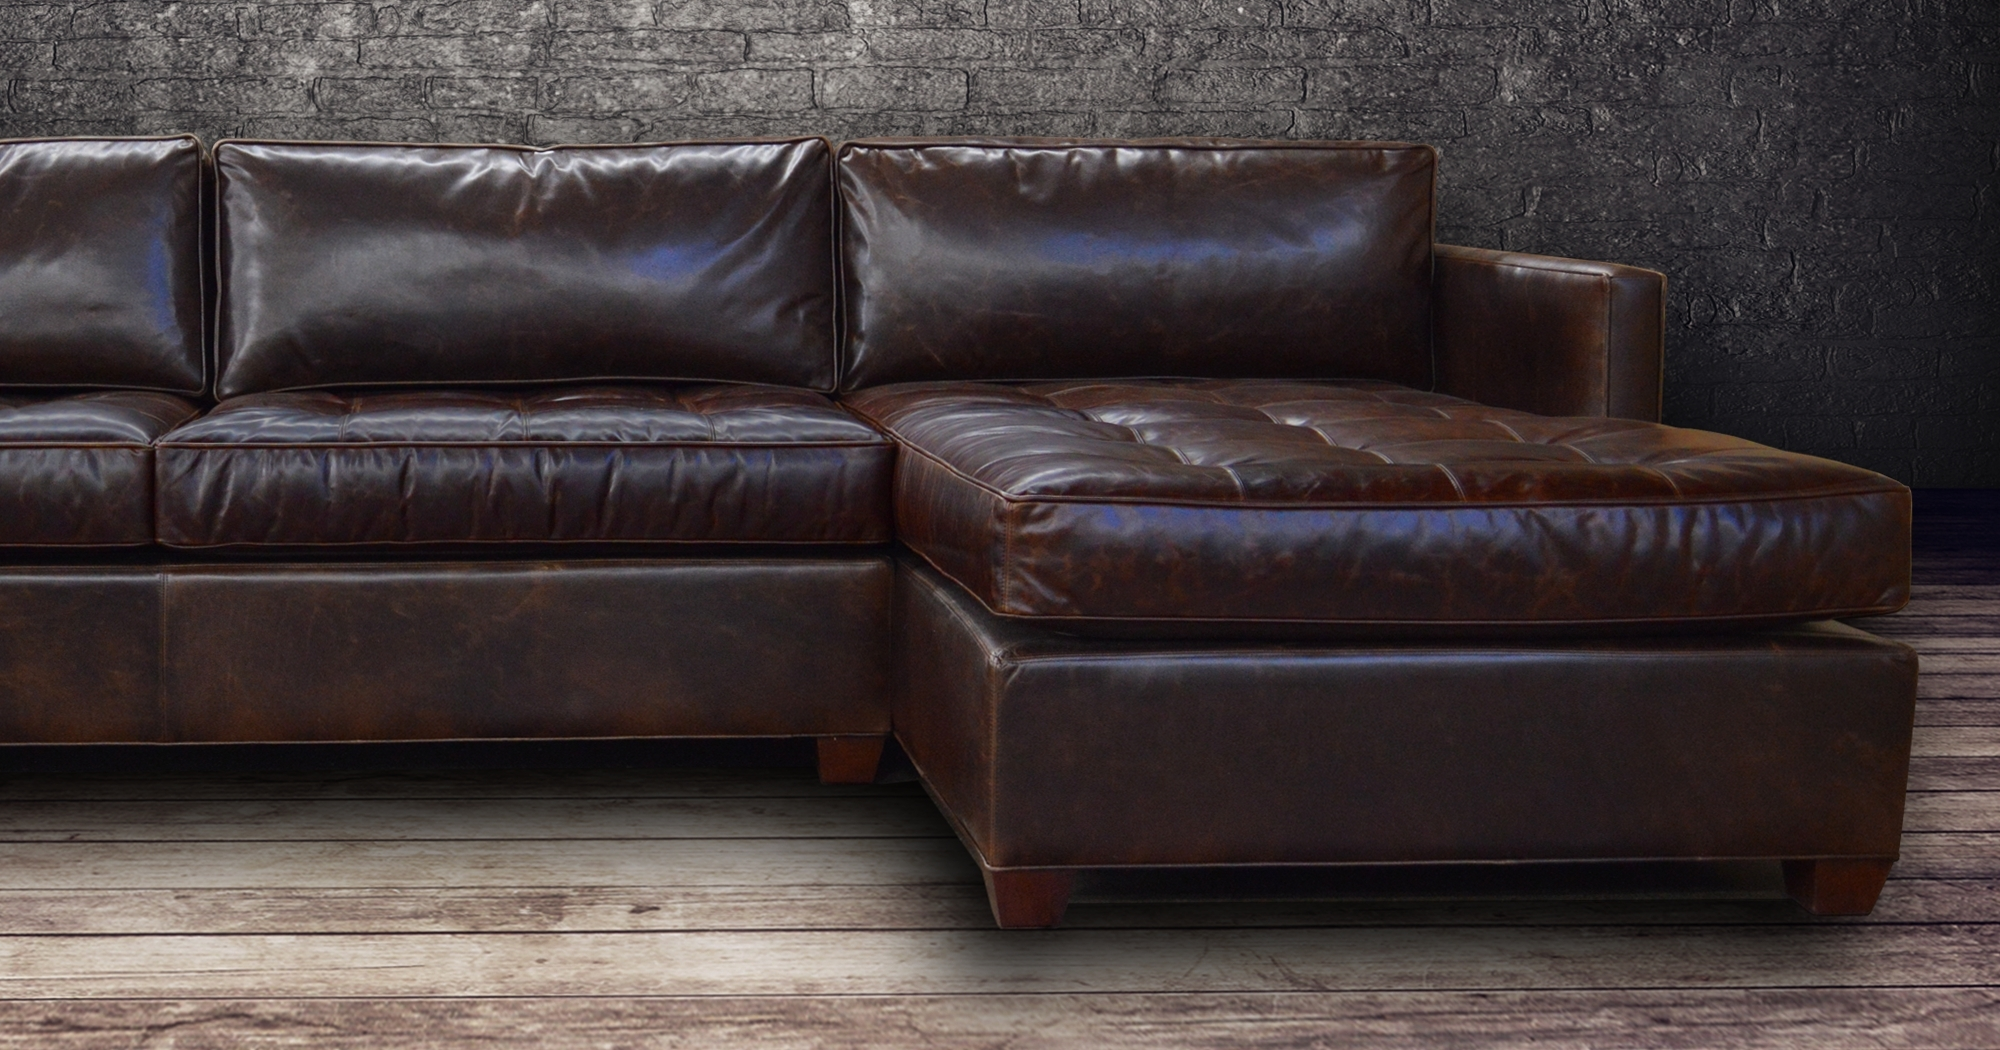 Vintage Sectional Sofas In Well Known Vintage Leather Sectional Sofa – Cleanupflorida (View 15 of 20)